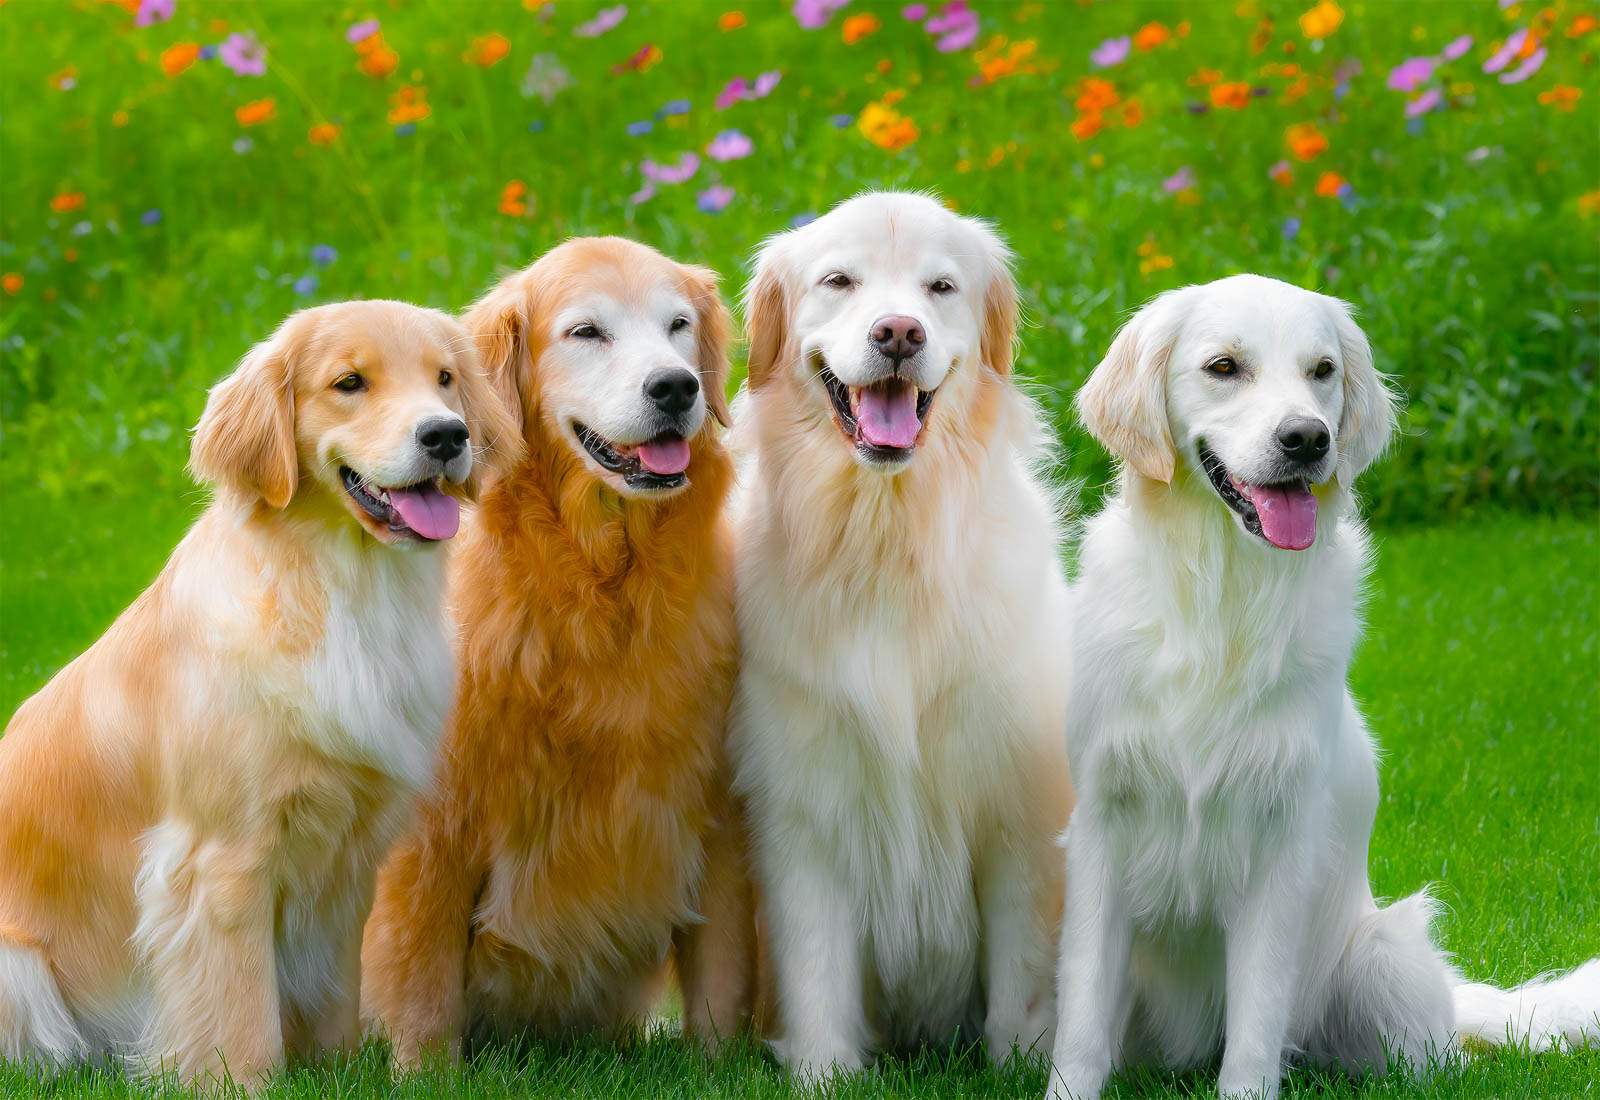 Four Golden Retrievers smiling on a summer day